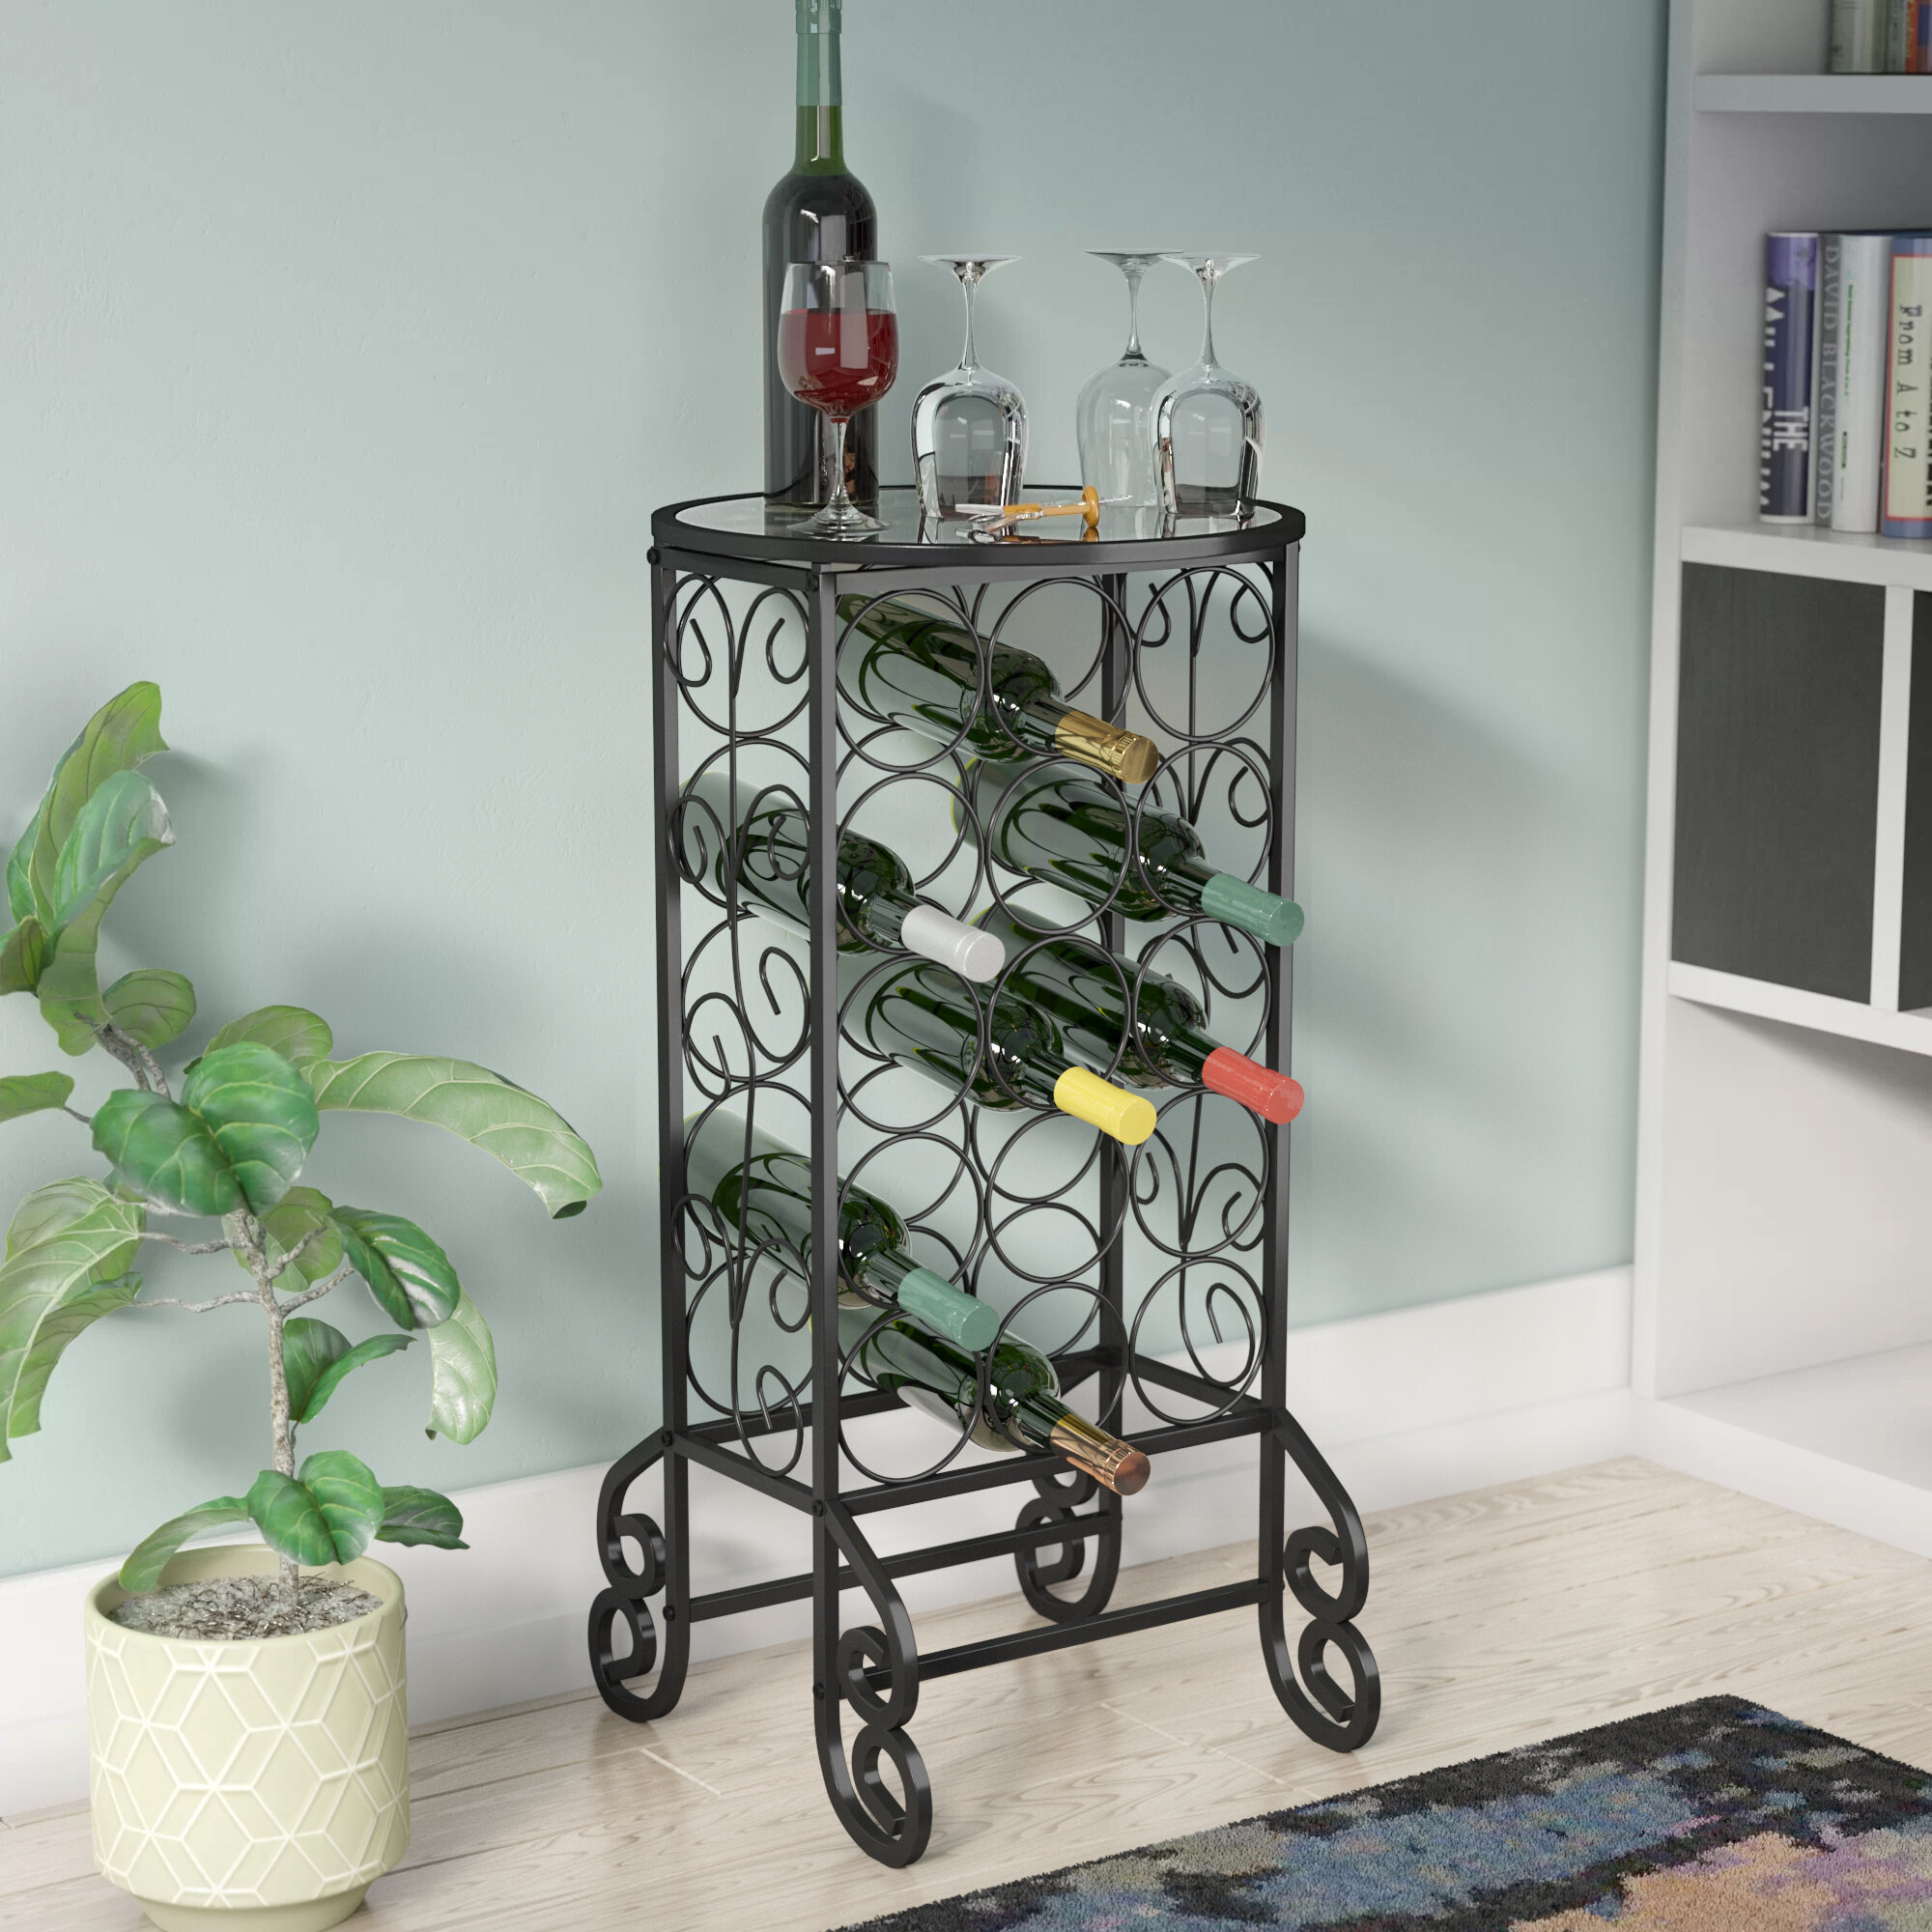 Fox Flower 2 Tier Wine Rack 6 Bottles Tabletop Wine Holder Freestanding Wine Storage with Metal Wood Frame Countertop Wine Shelf for Home Bar Cabinet Pantry